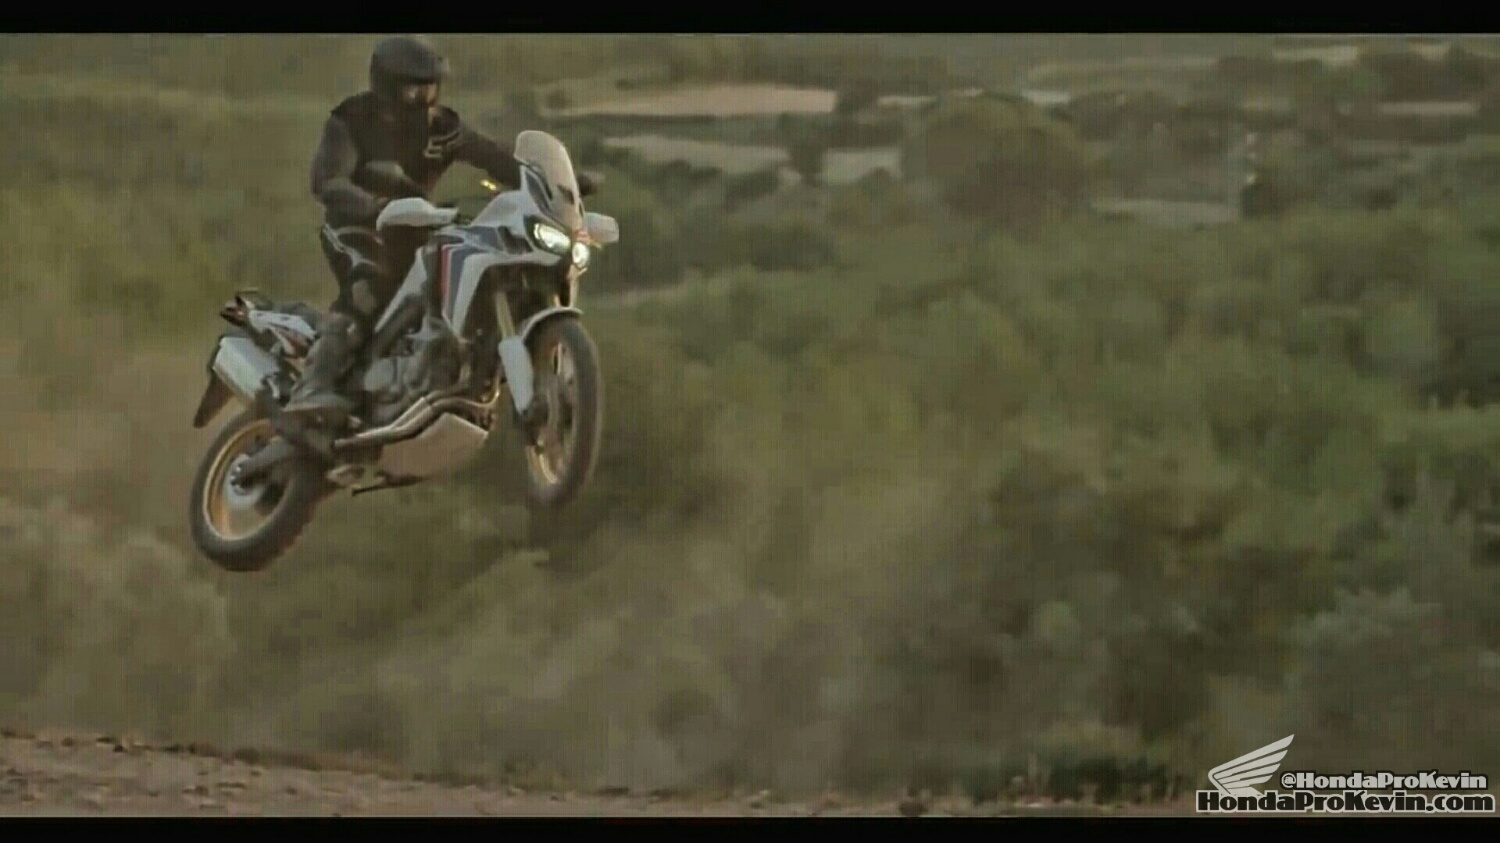 2016 Honda Africa Twin 1000 Review - Specs - Horsepower - Price - Release Date USA - CRF1000L